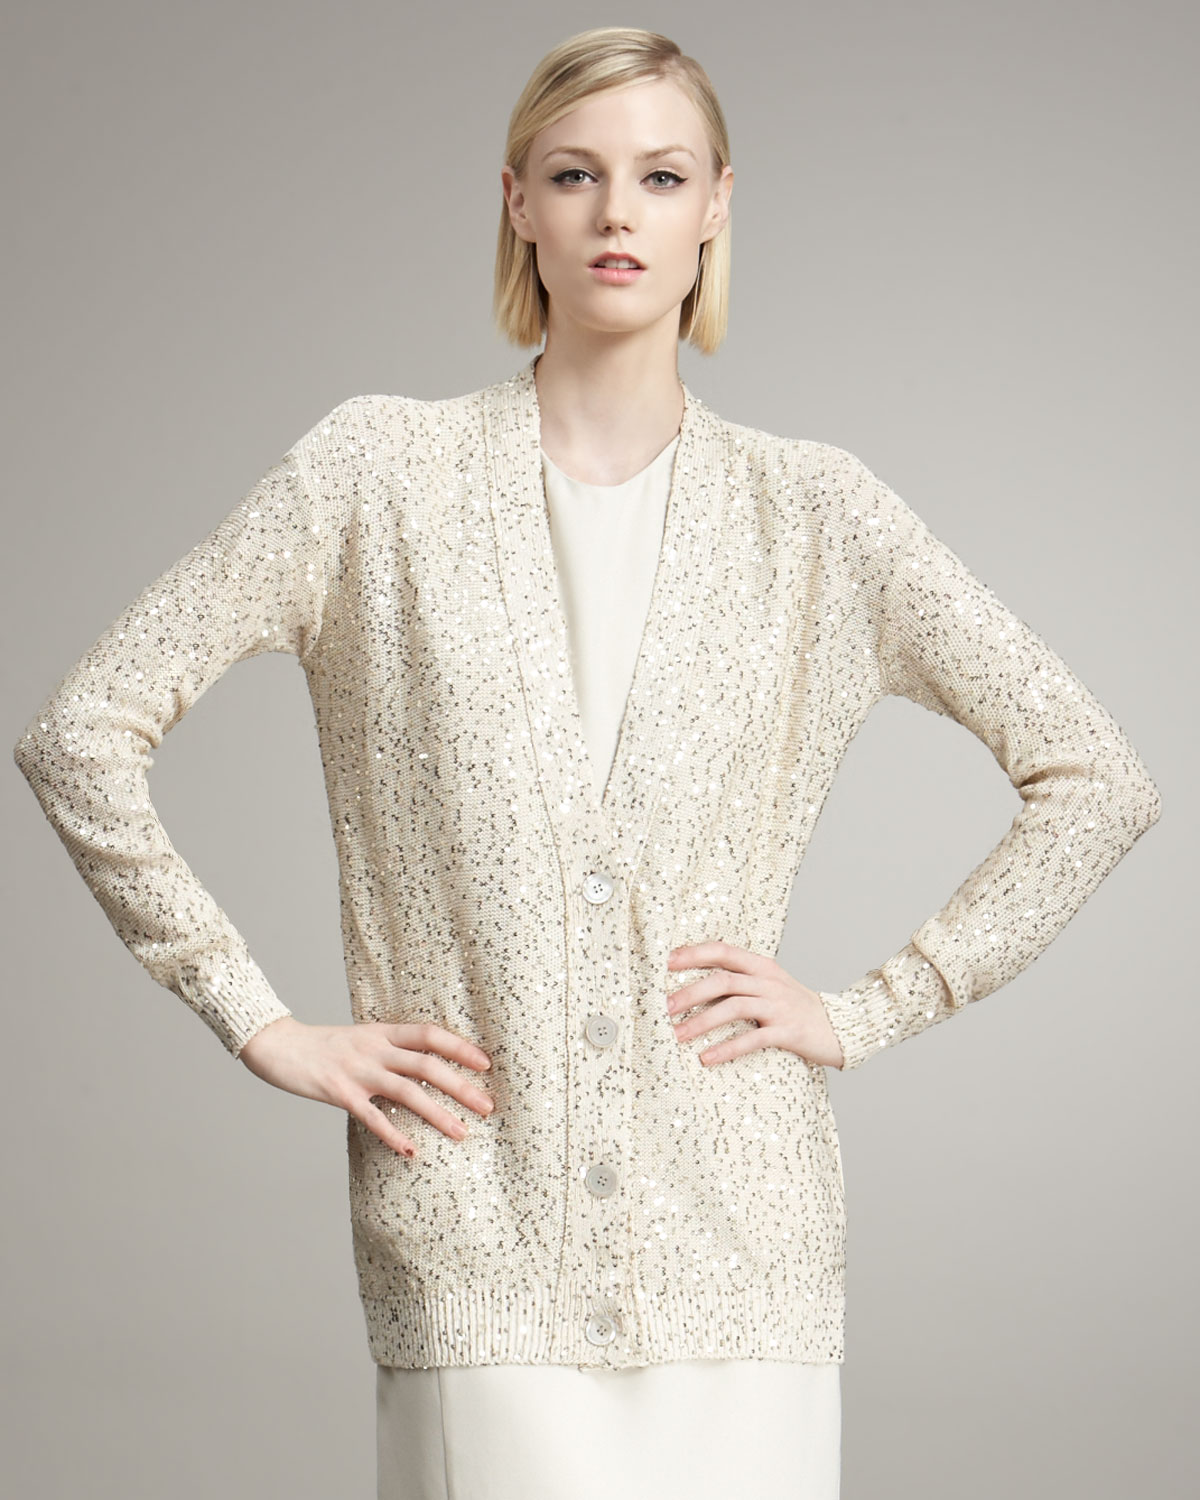 Stella mccartney Sequined Cardigan in White   Lyst